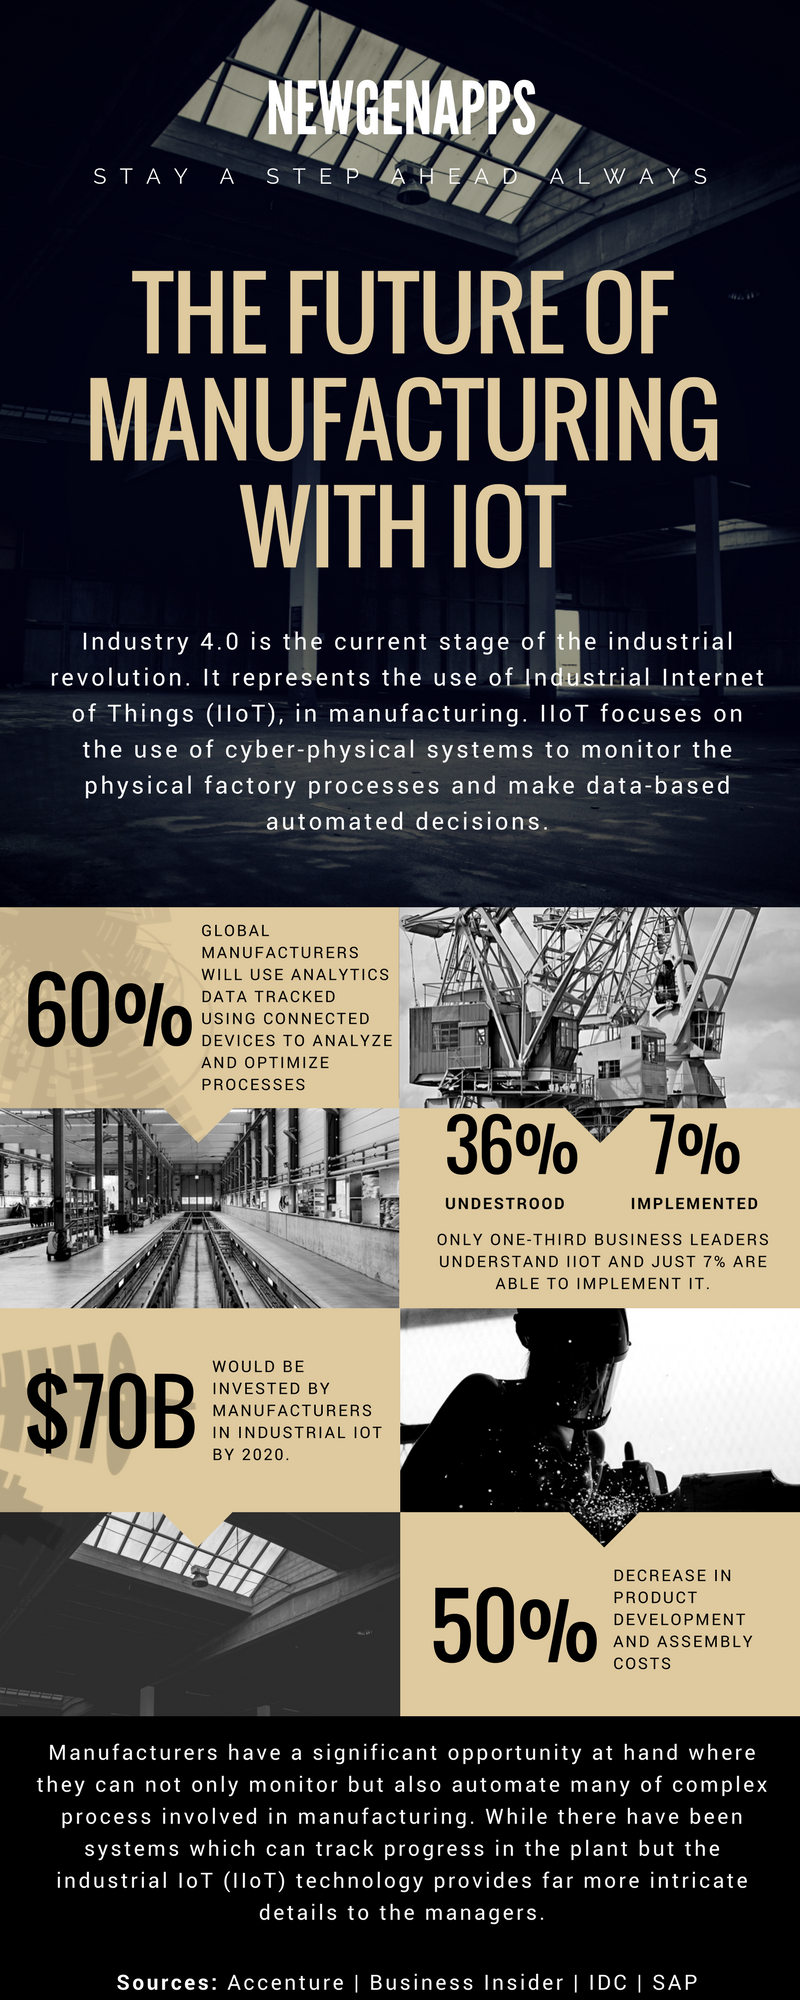 IIoT Manufacting Industry 40 Infographic Stats and Future